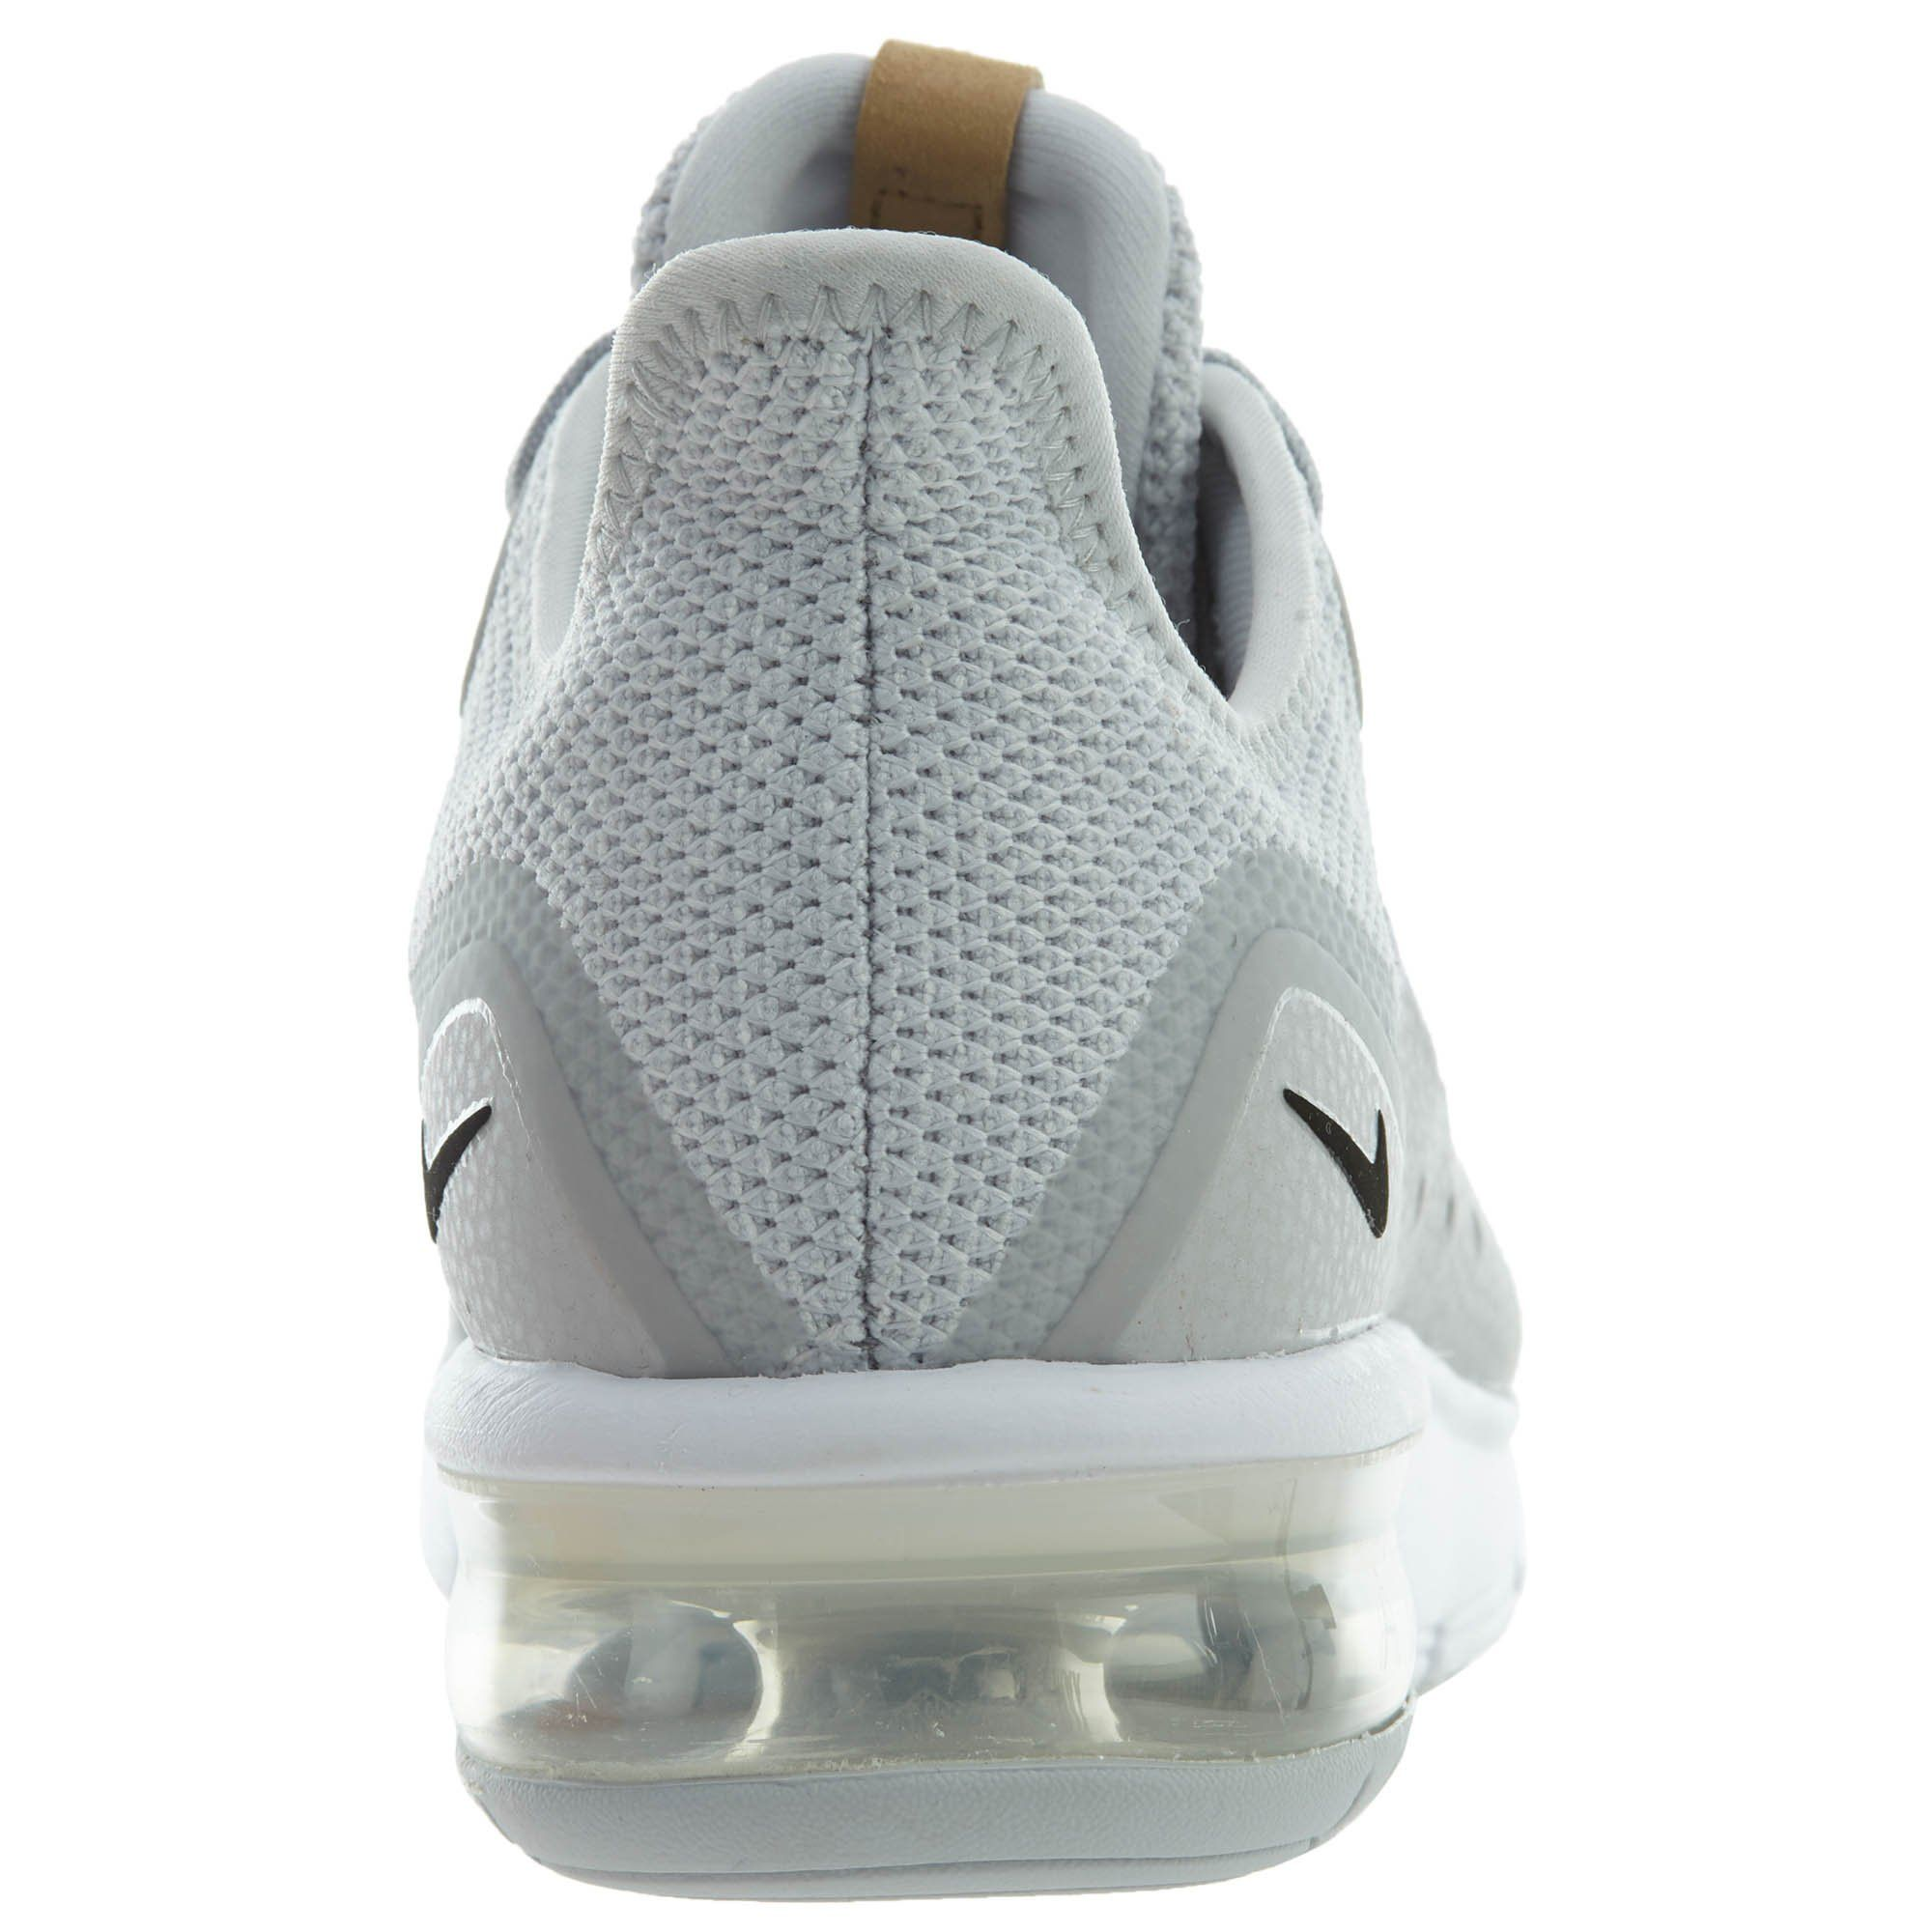 best service d84b1 67d9b Nike Womens Air Max Sequent 3 Running Shoe Pure Platinum Black White Size  7.5 M US    Click image to review more details. (This is an affiliate link)